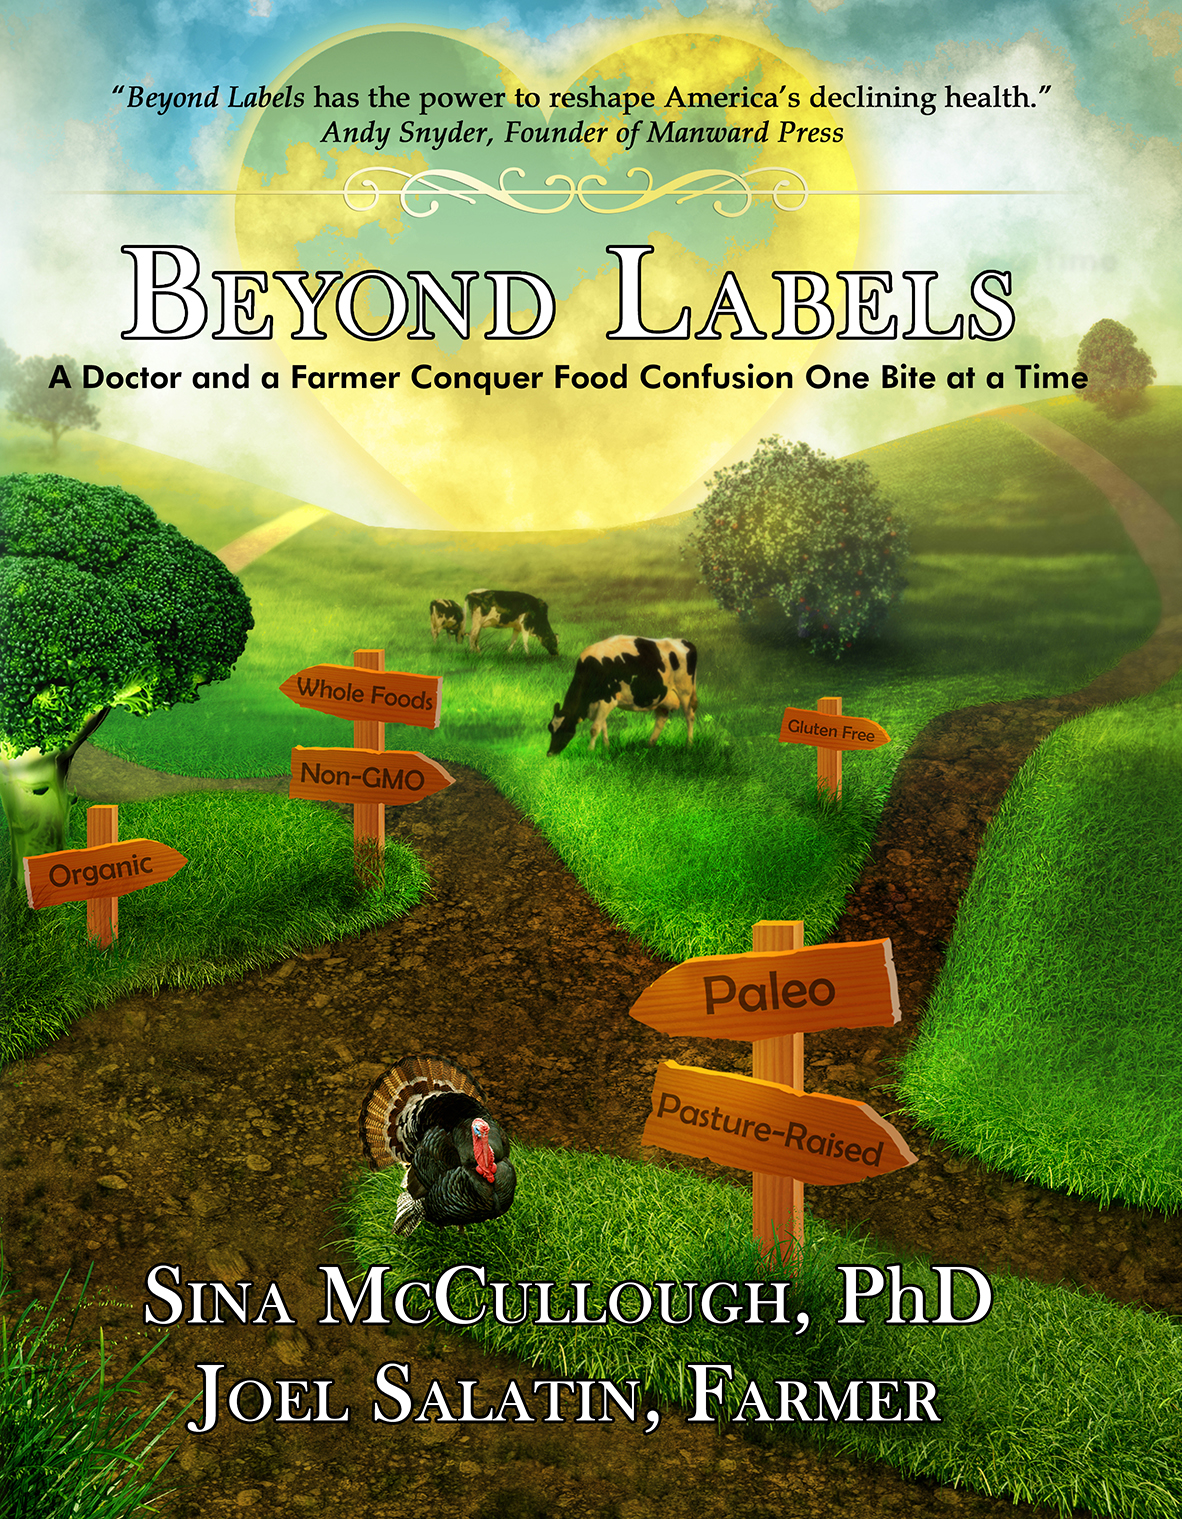 The Beyond Labels cover